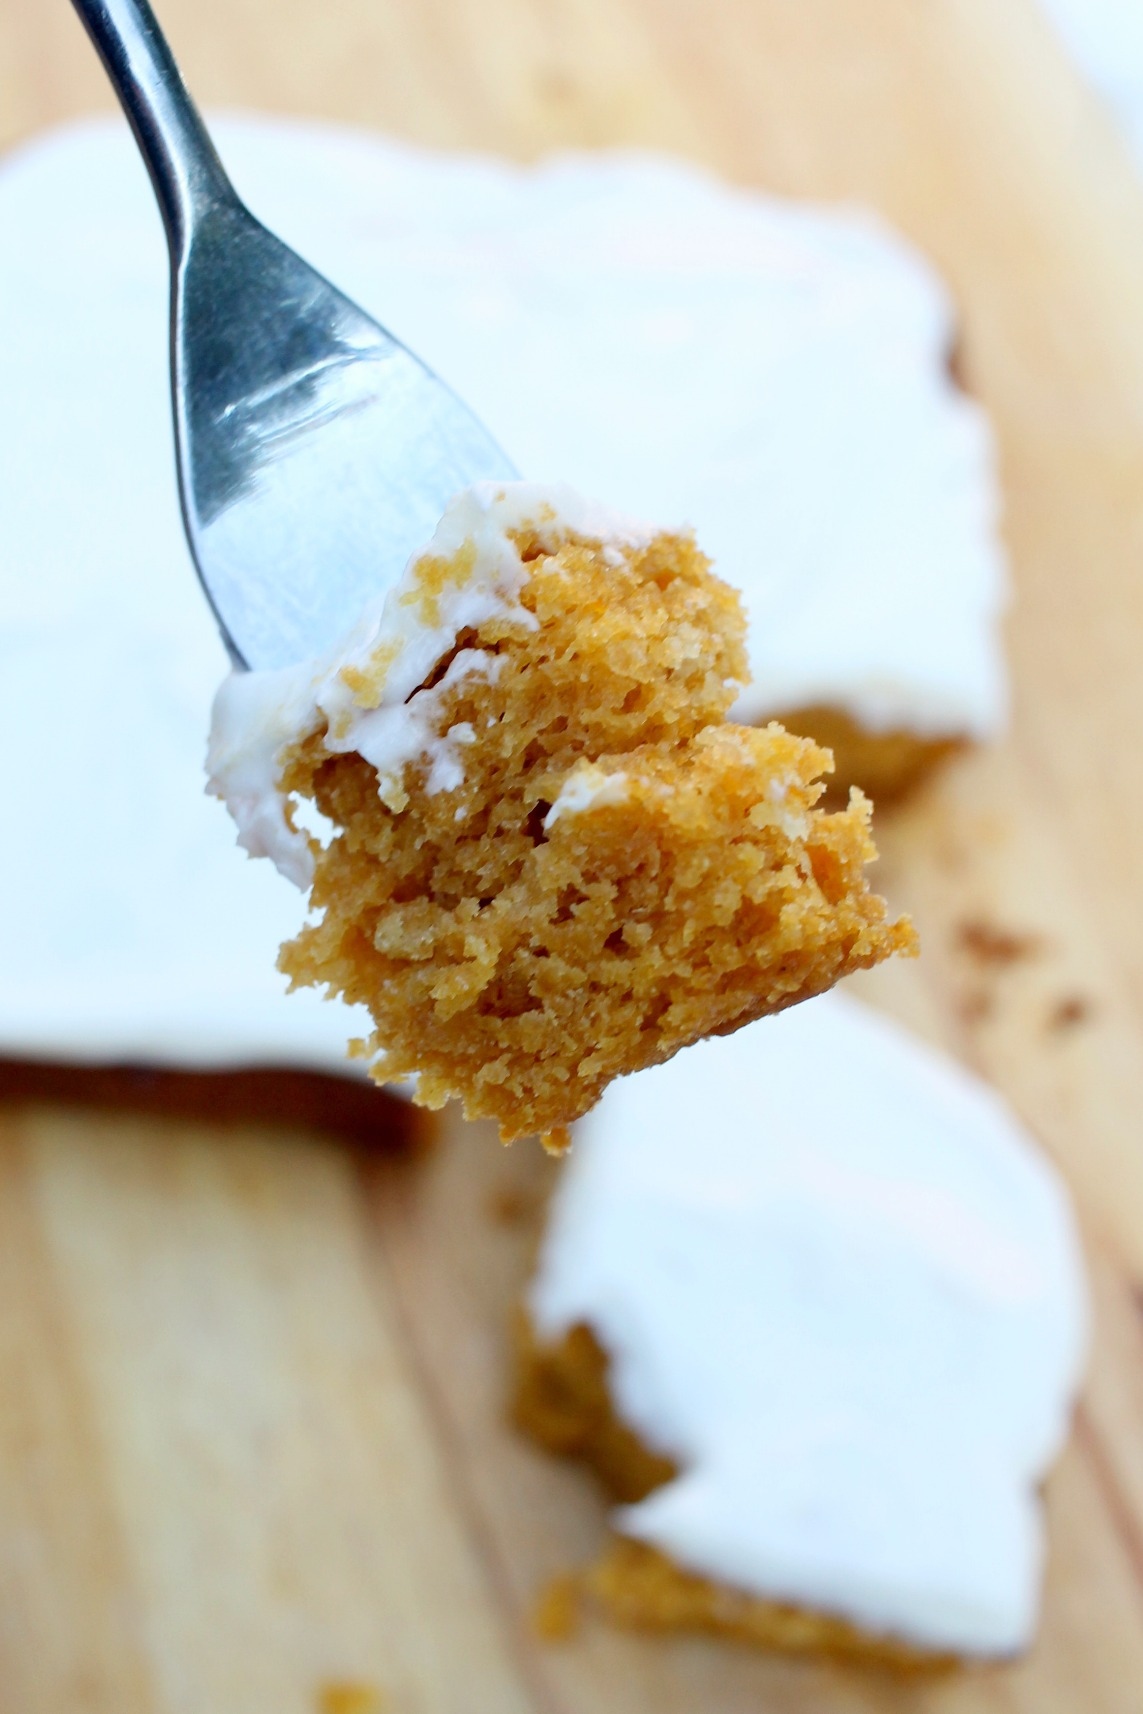 a fork holding a bite of pumpkin cake with the rest of the cake in the background